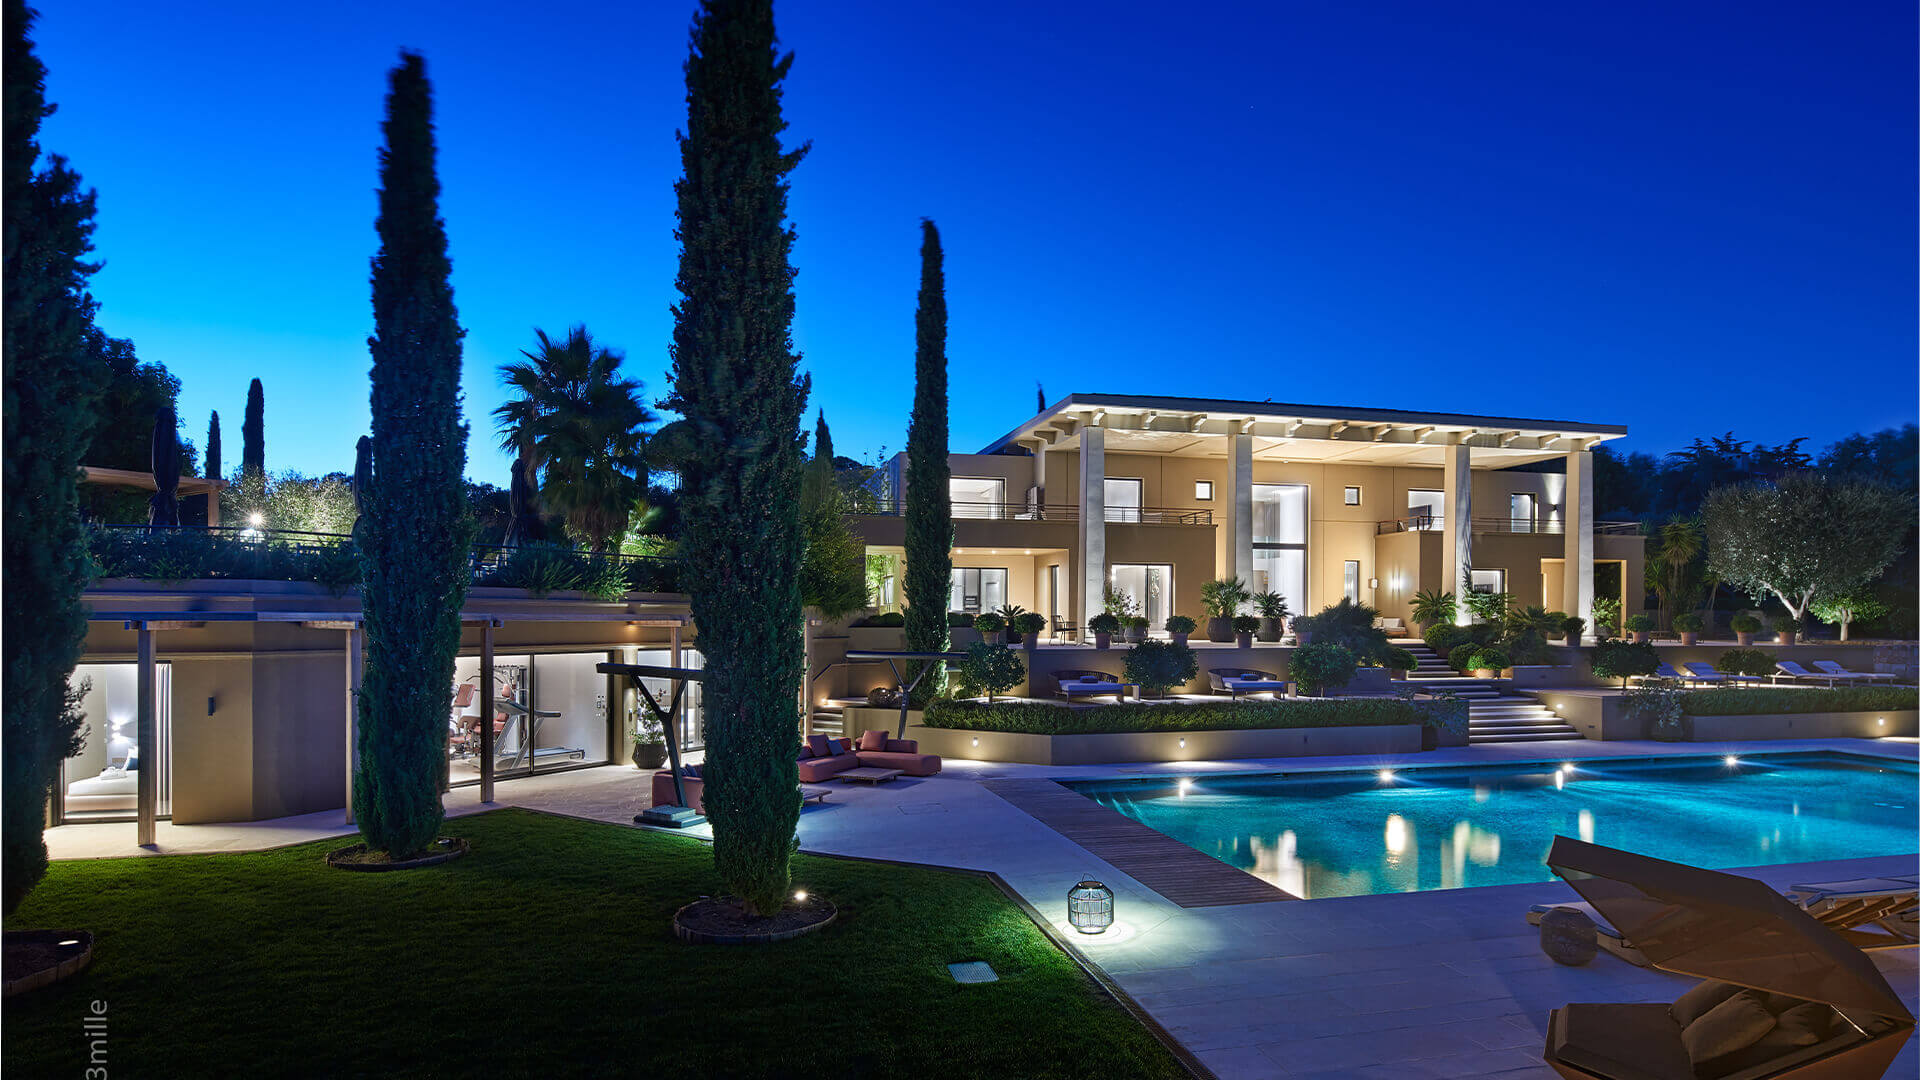 Villa at night with swimming pool